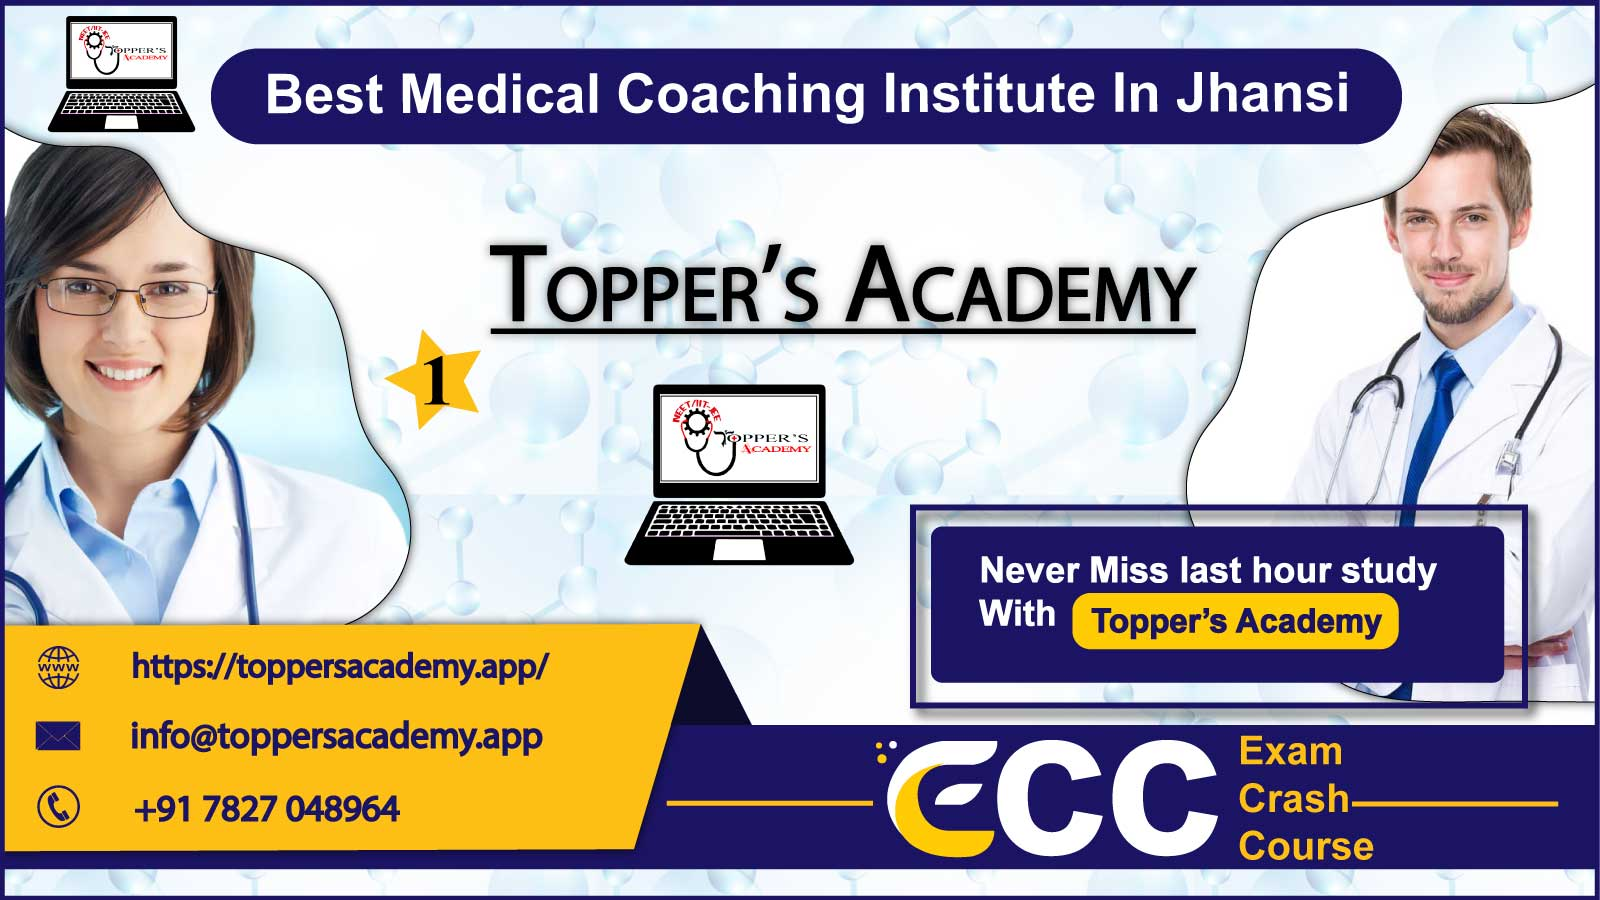 Toppers Academy NEET Coaching in Jhansi